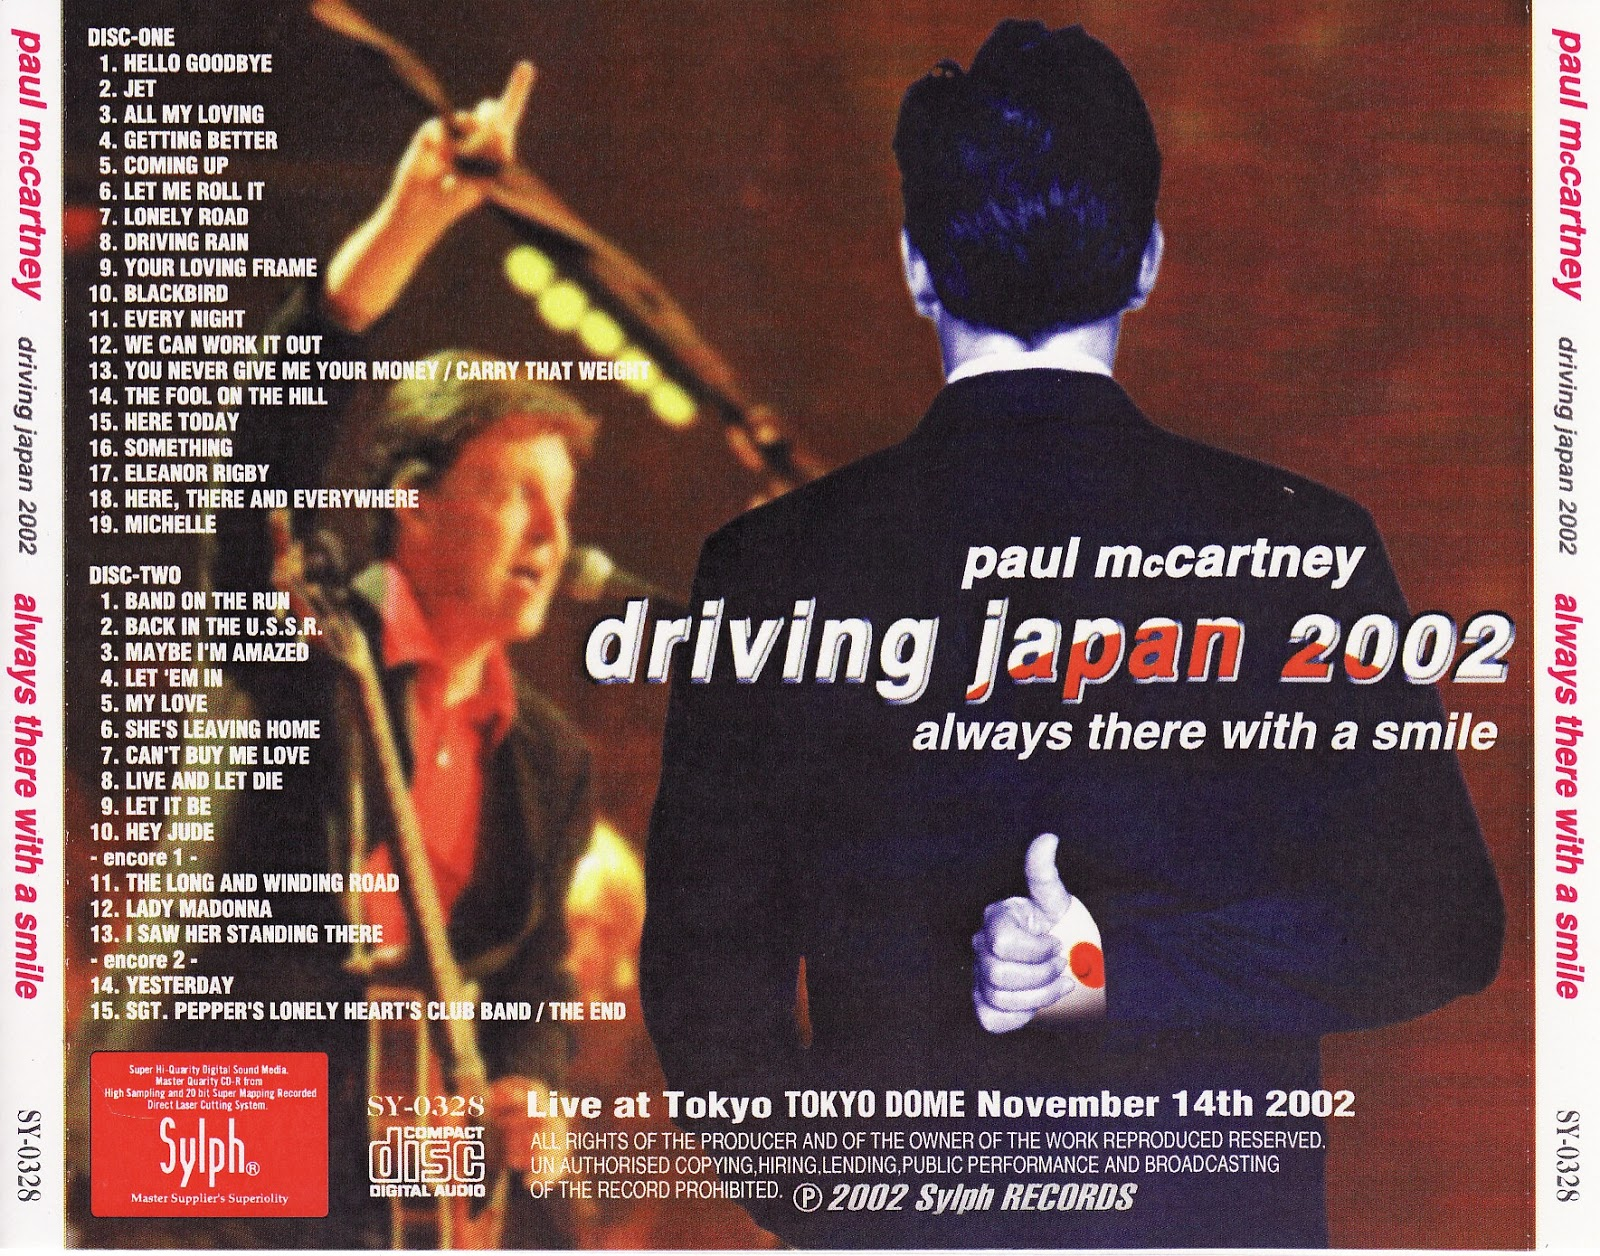 Paul McCartney Always There With A Smile 2002 Sylph Records SY 0328 Driving Japan Tour Tokyo Dome Thursday November 14th